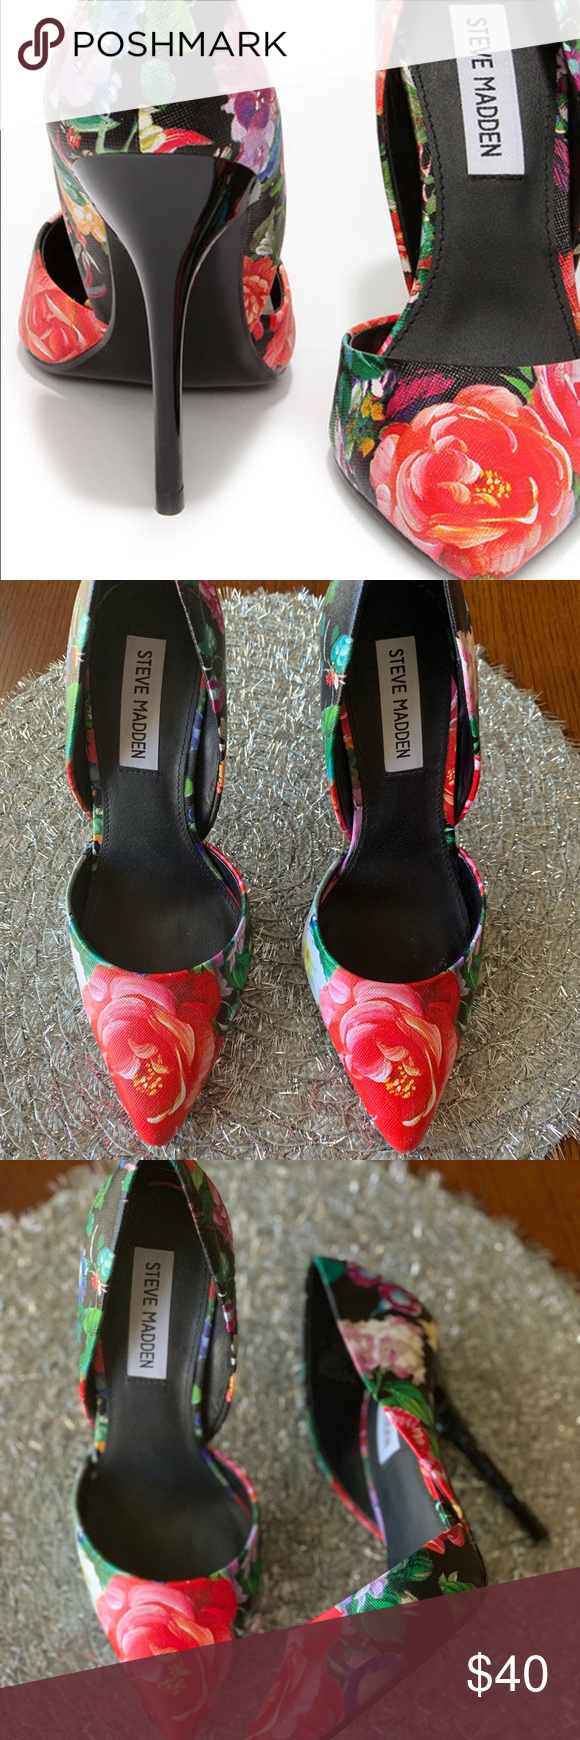 bc278f83f41c Steve Madden Varcityy Floral Multi D Orsay Pumps The Steve Madden Varcityy  Floral Multi D